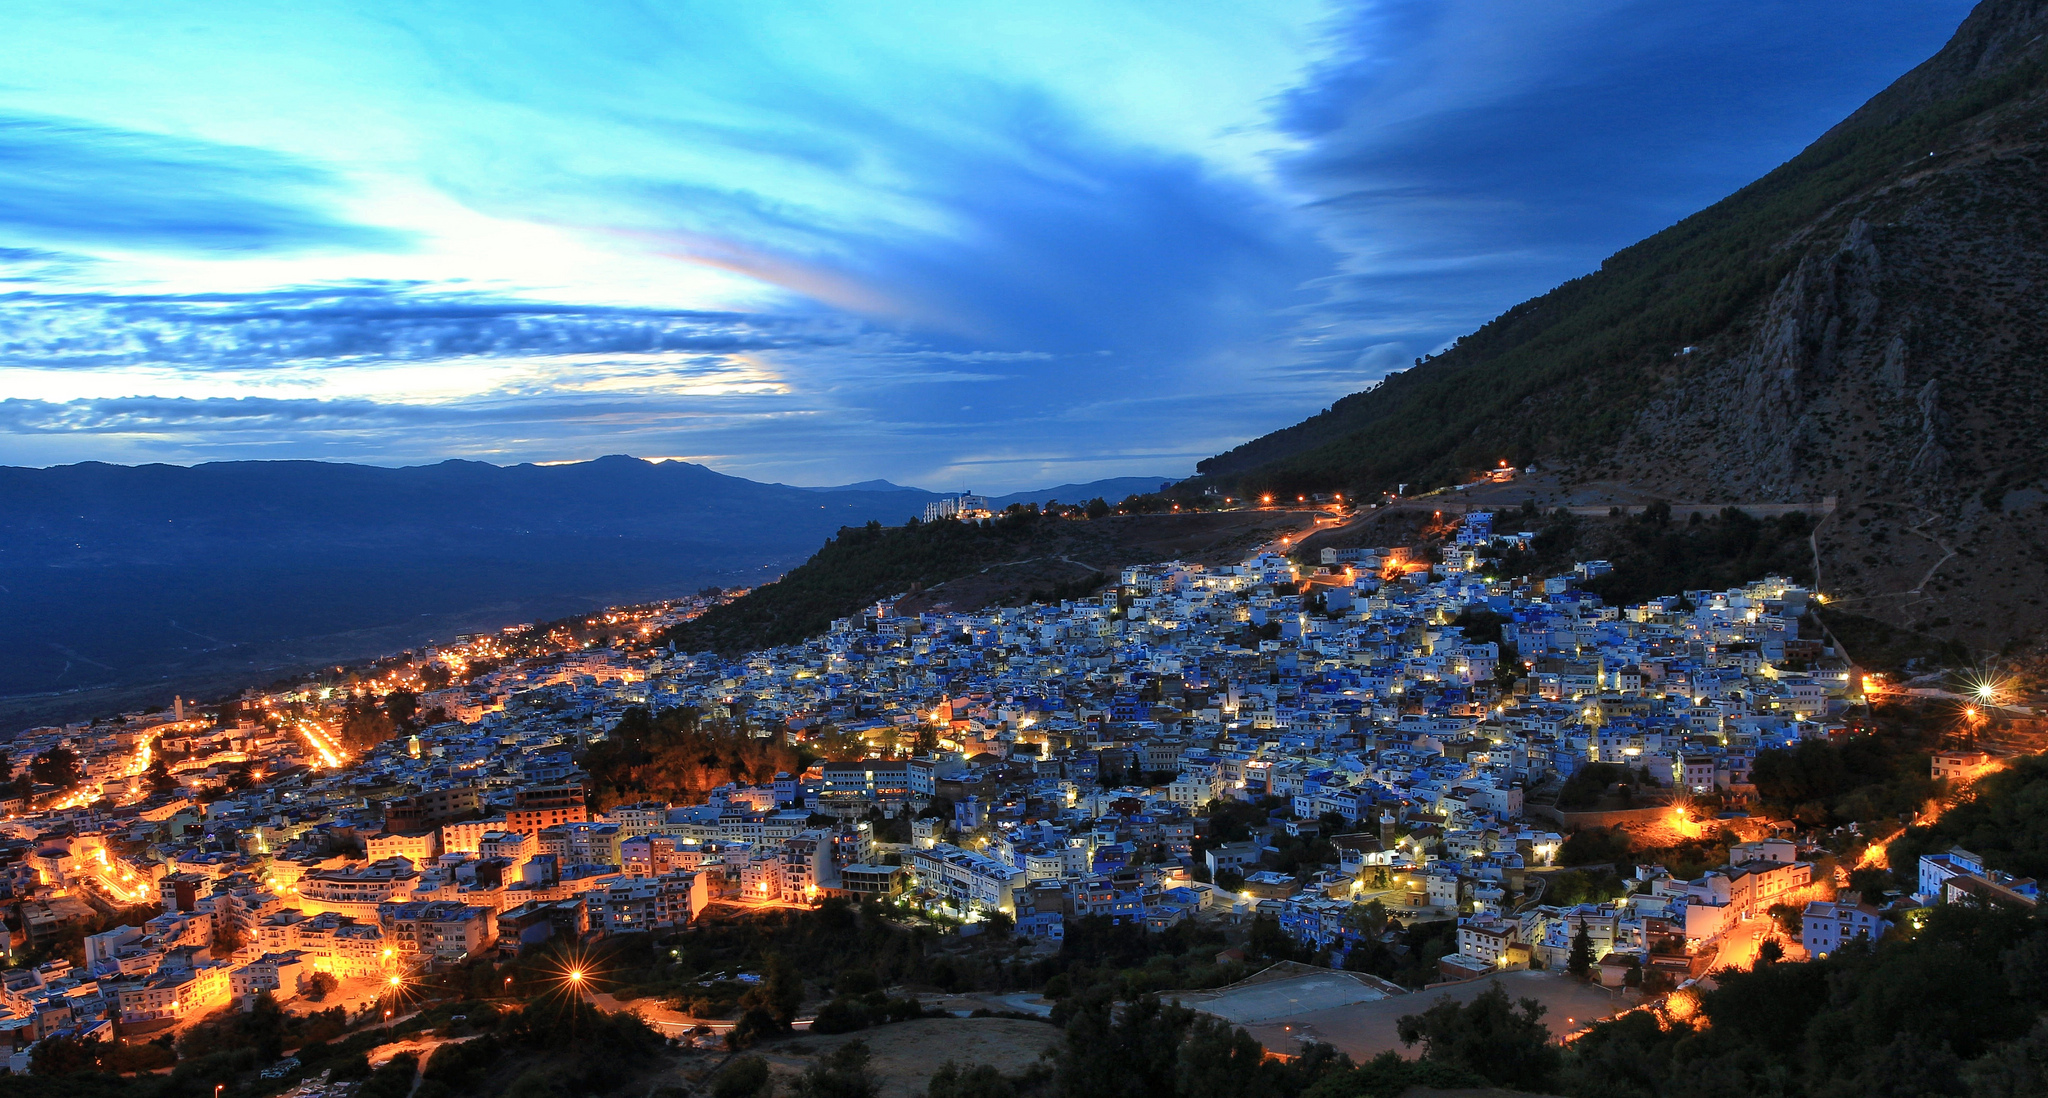 """Chefchaouen"" by Franx via Flickr Creative Commons"